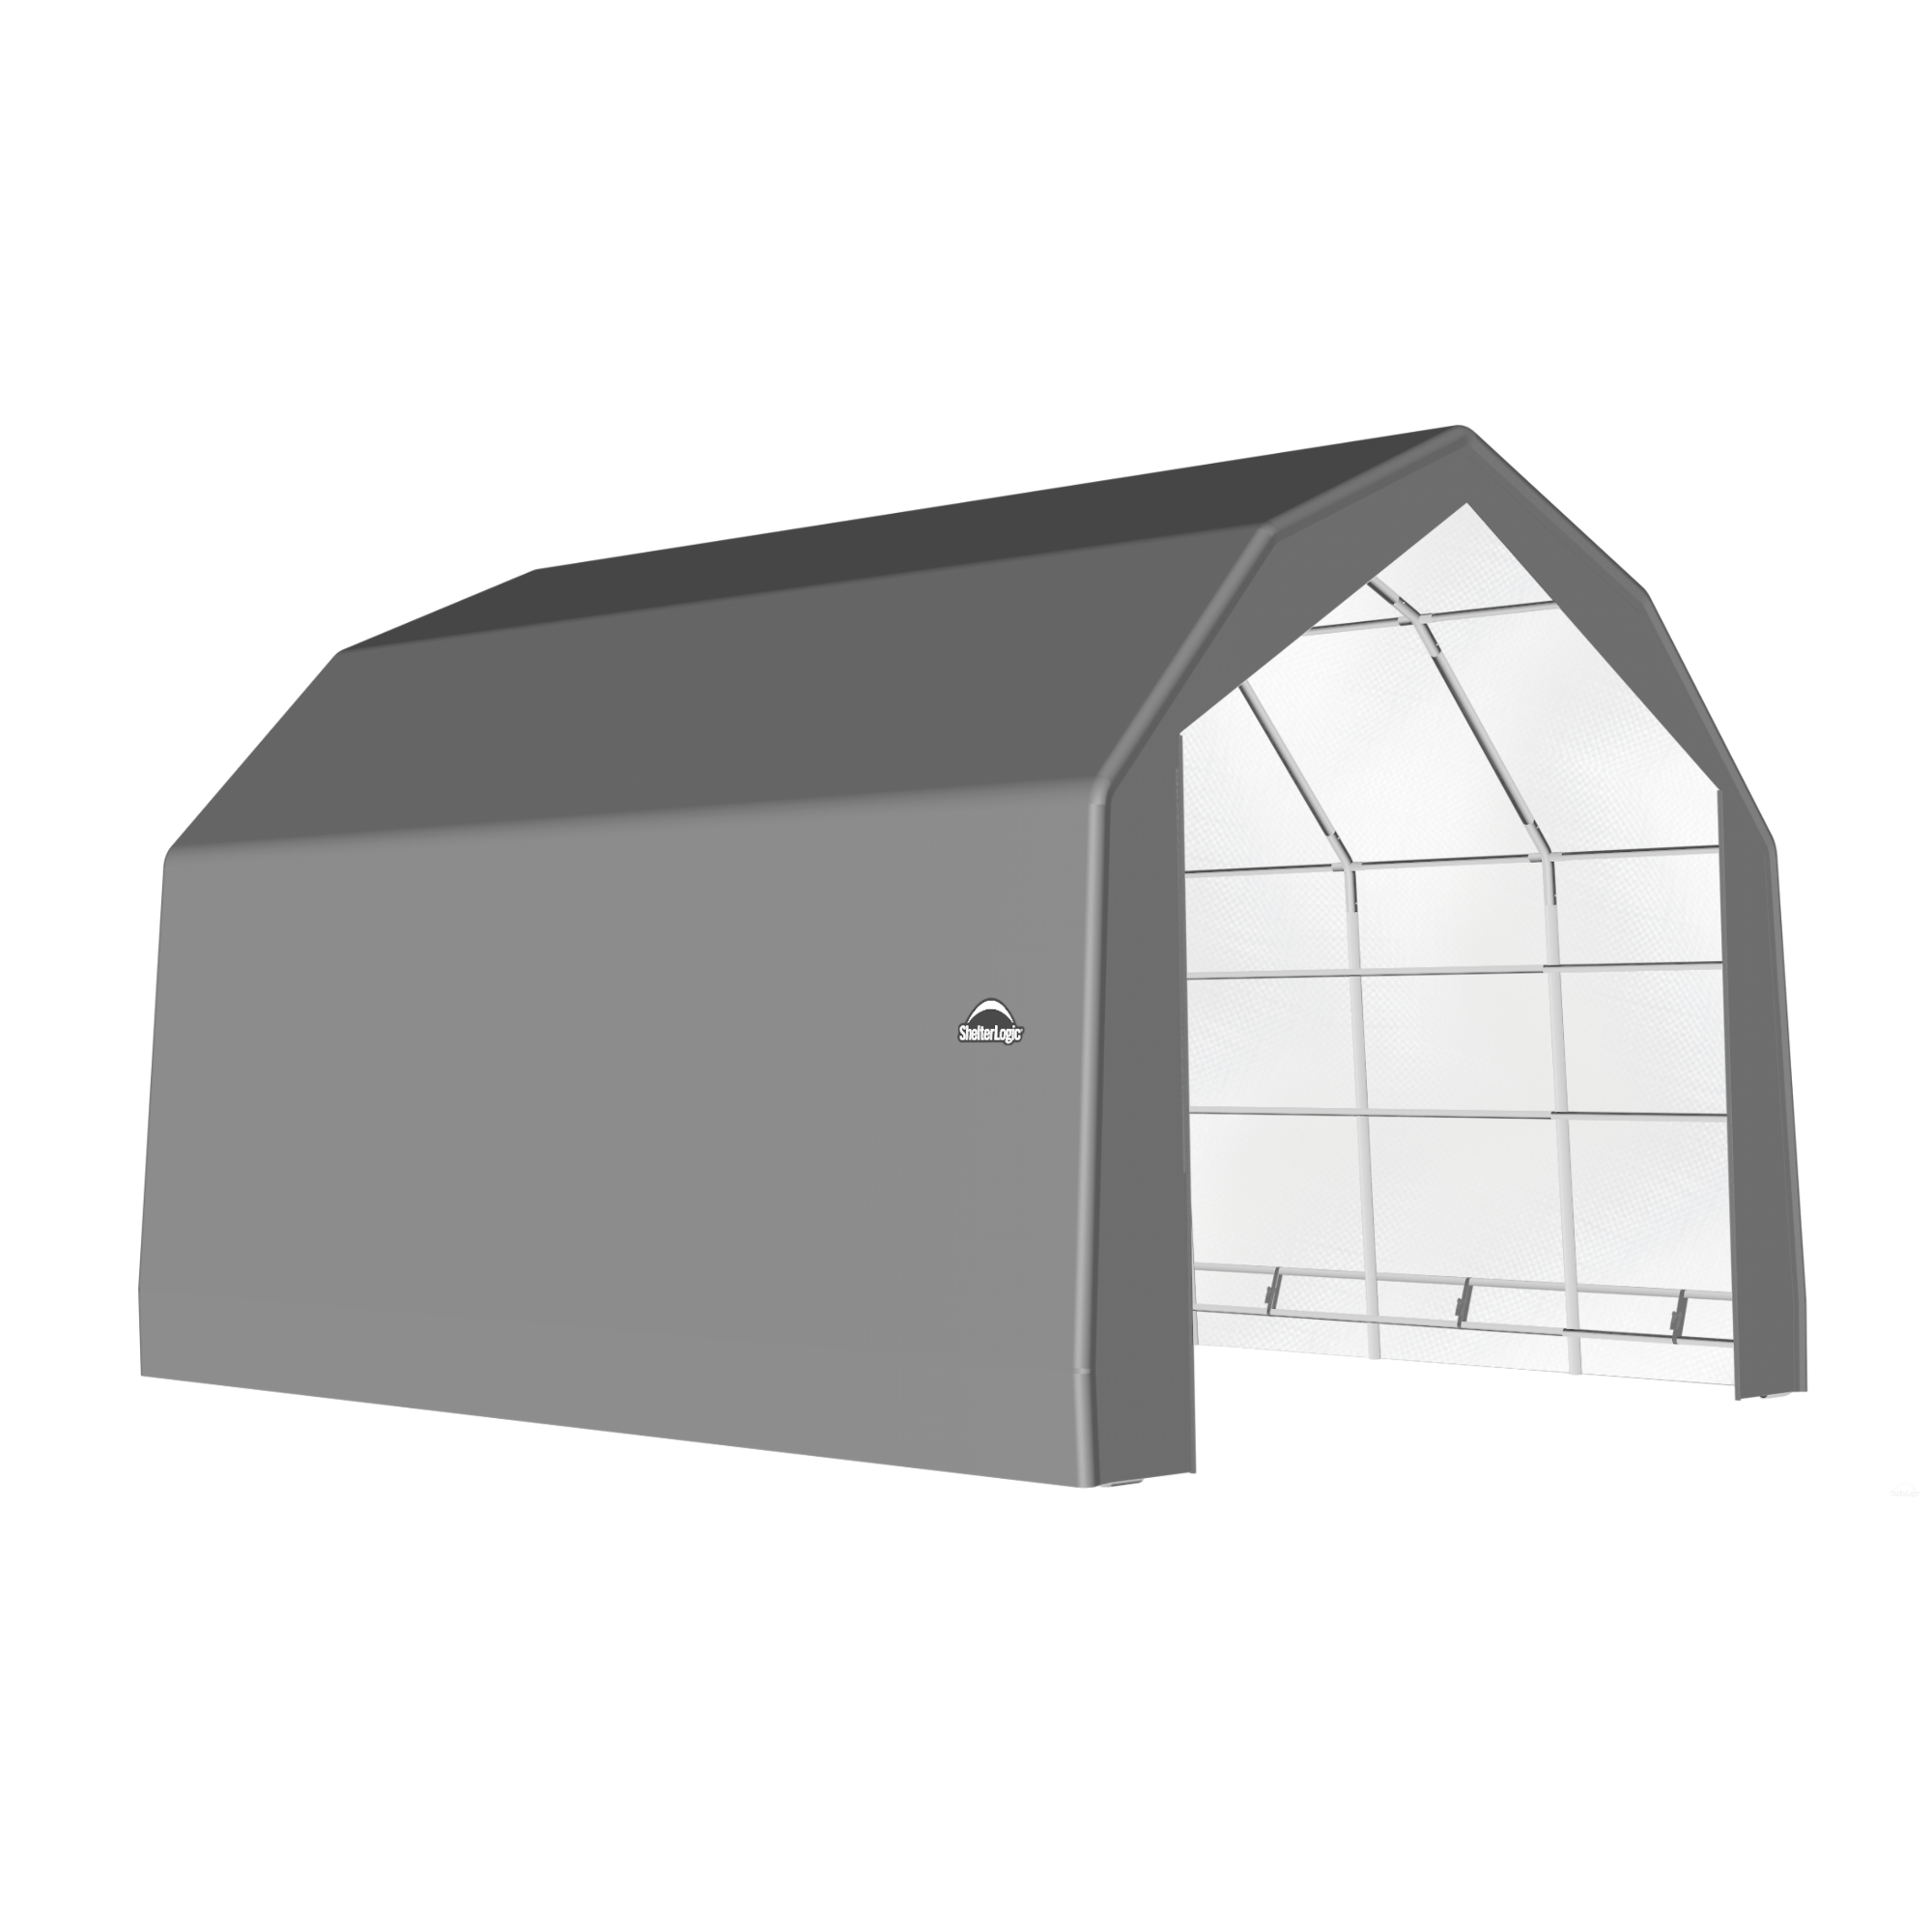 SP Barn 20X24X15 Gray 14 oz PE Shelter